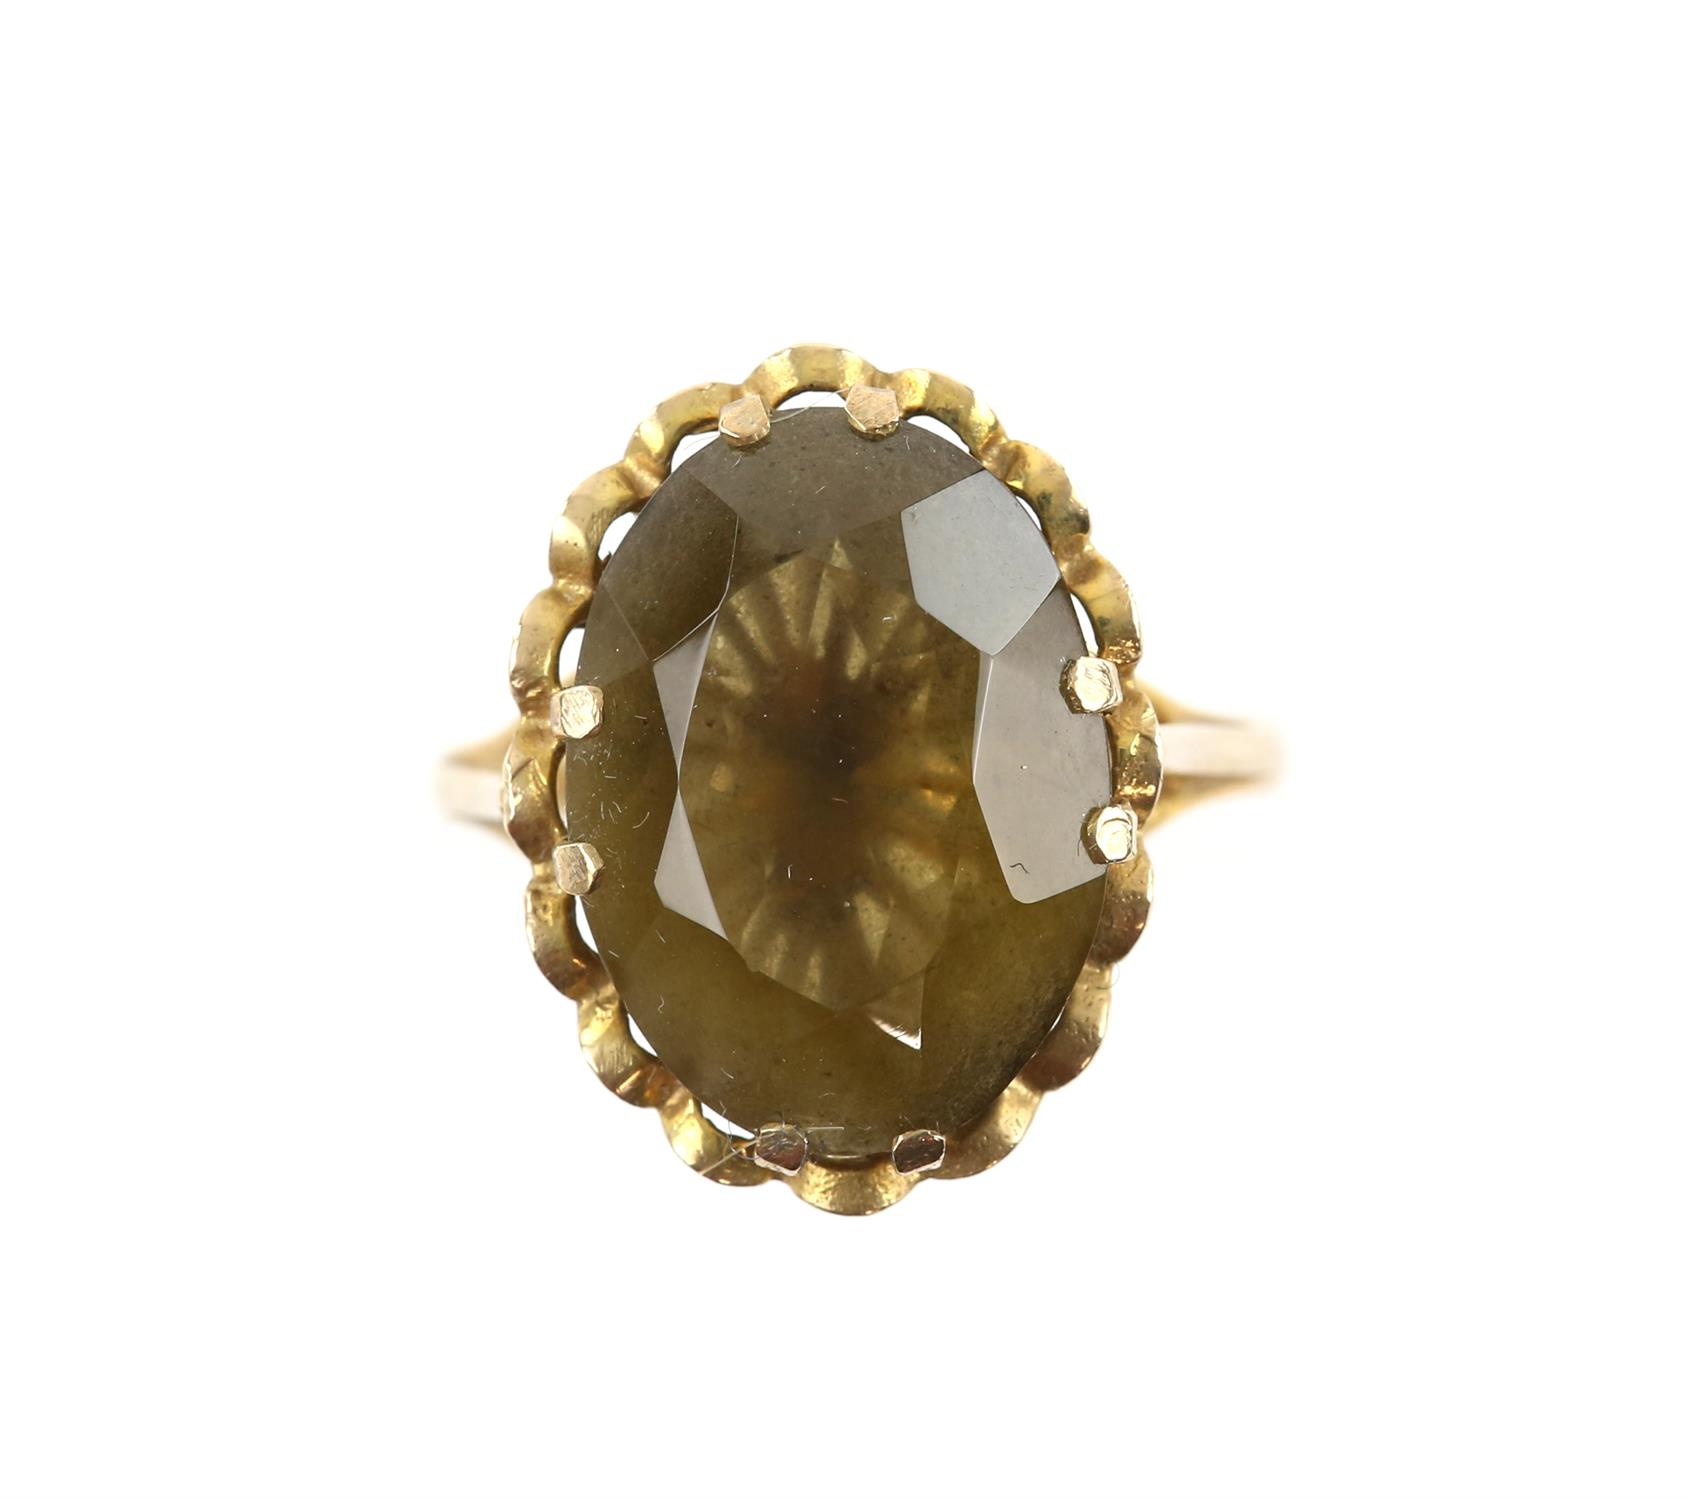 Single stone citrine ring. Oval cut citrine measuring 18.36 x 13.39mm, mounted in 9 ct,